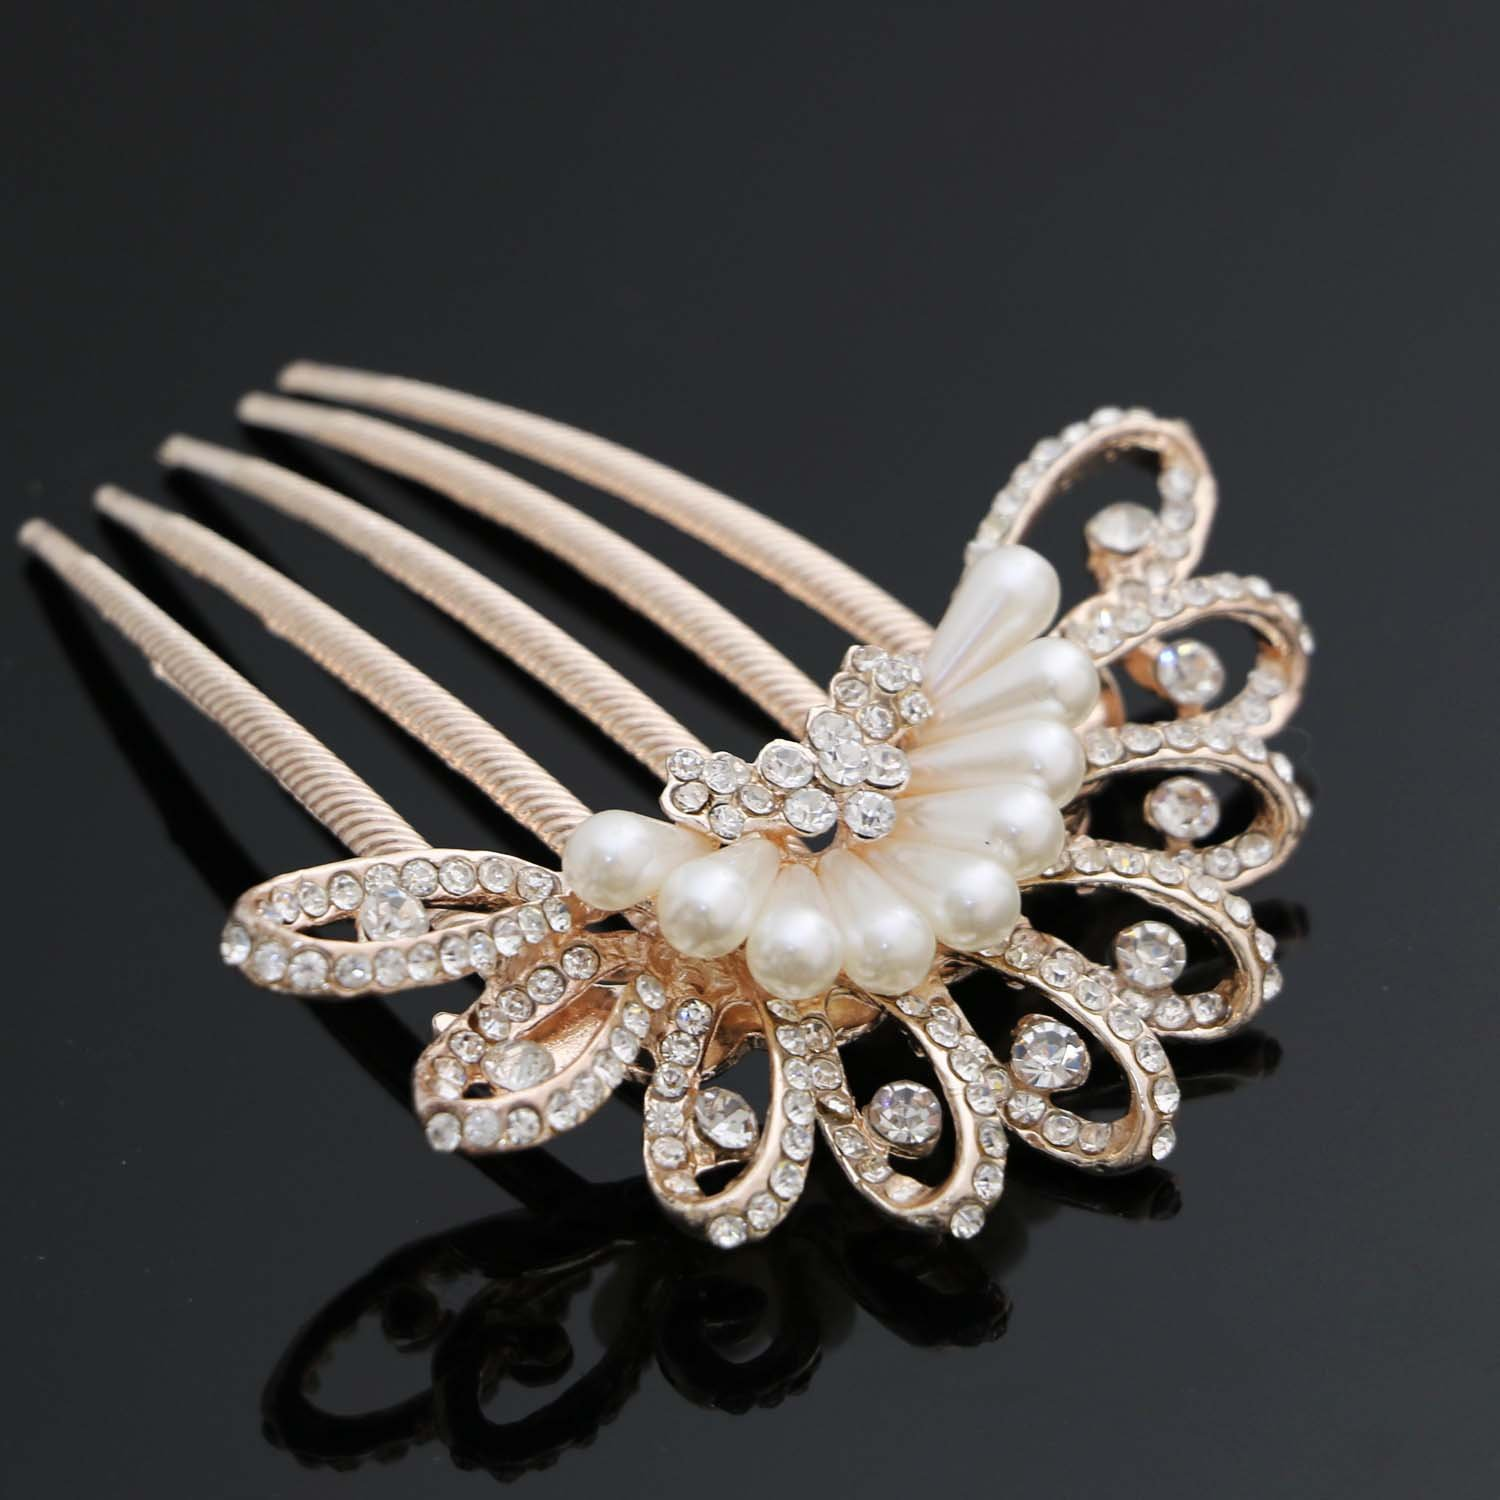 Nero Decorative Hair Combs with Rhinestones for Women, Hair Accessories for Girls.